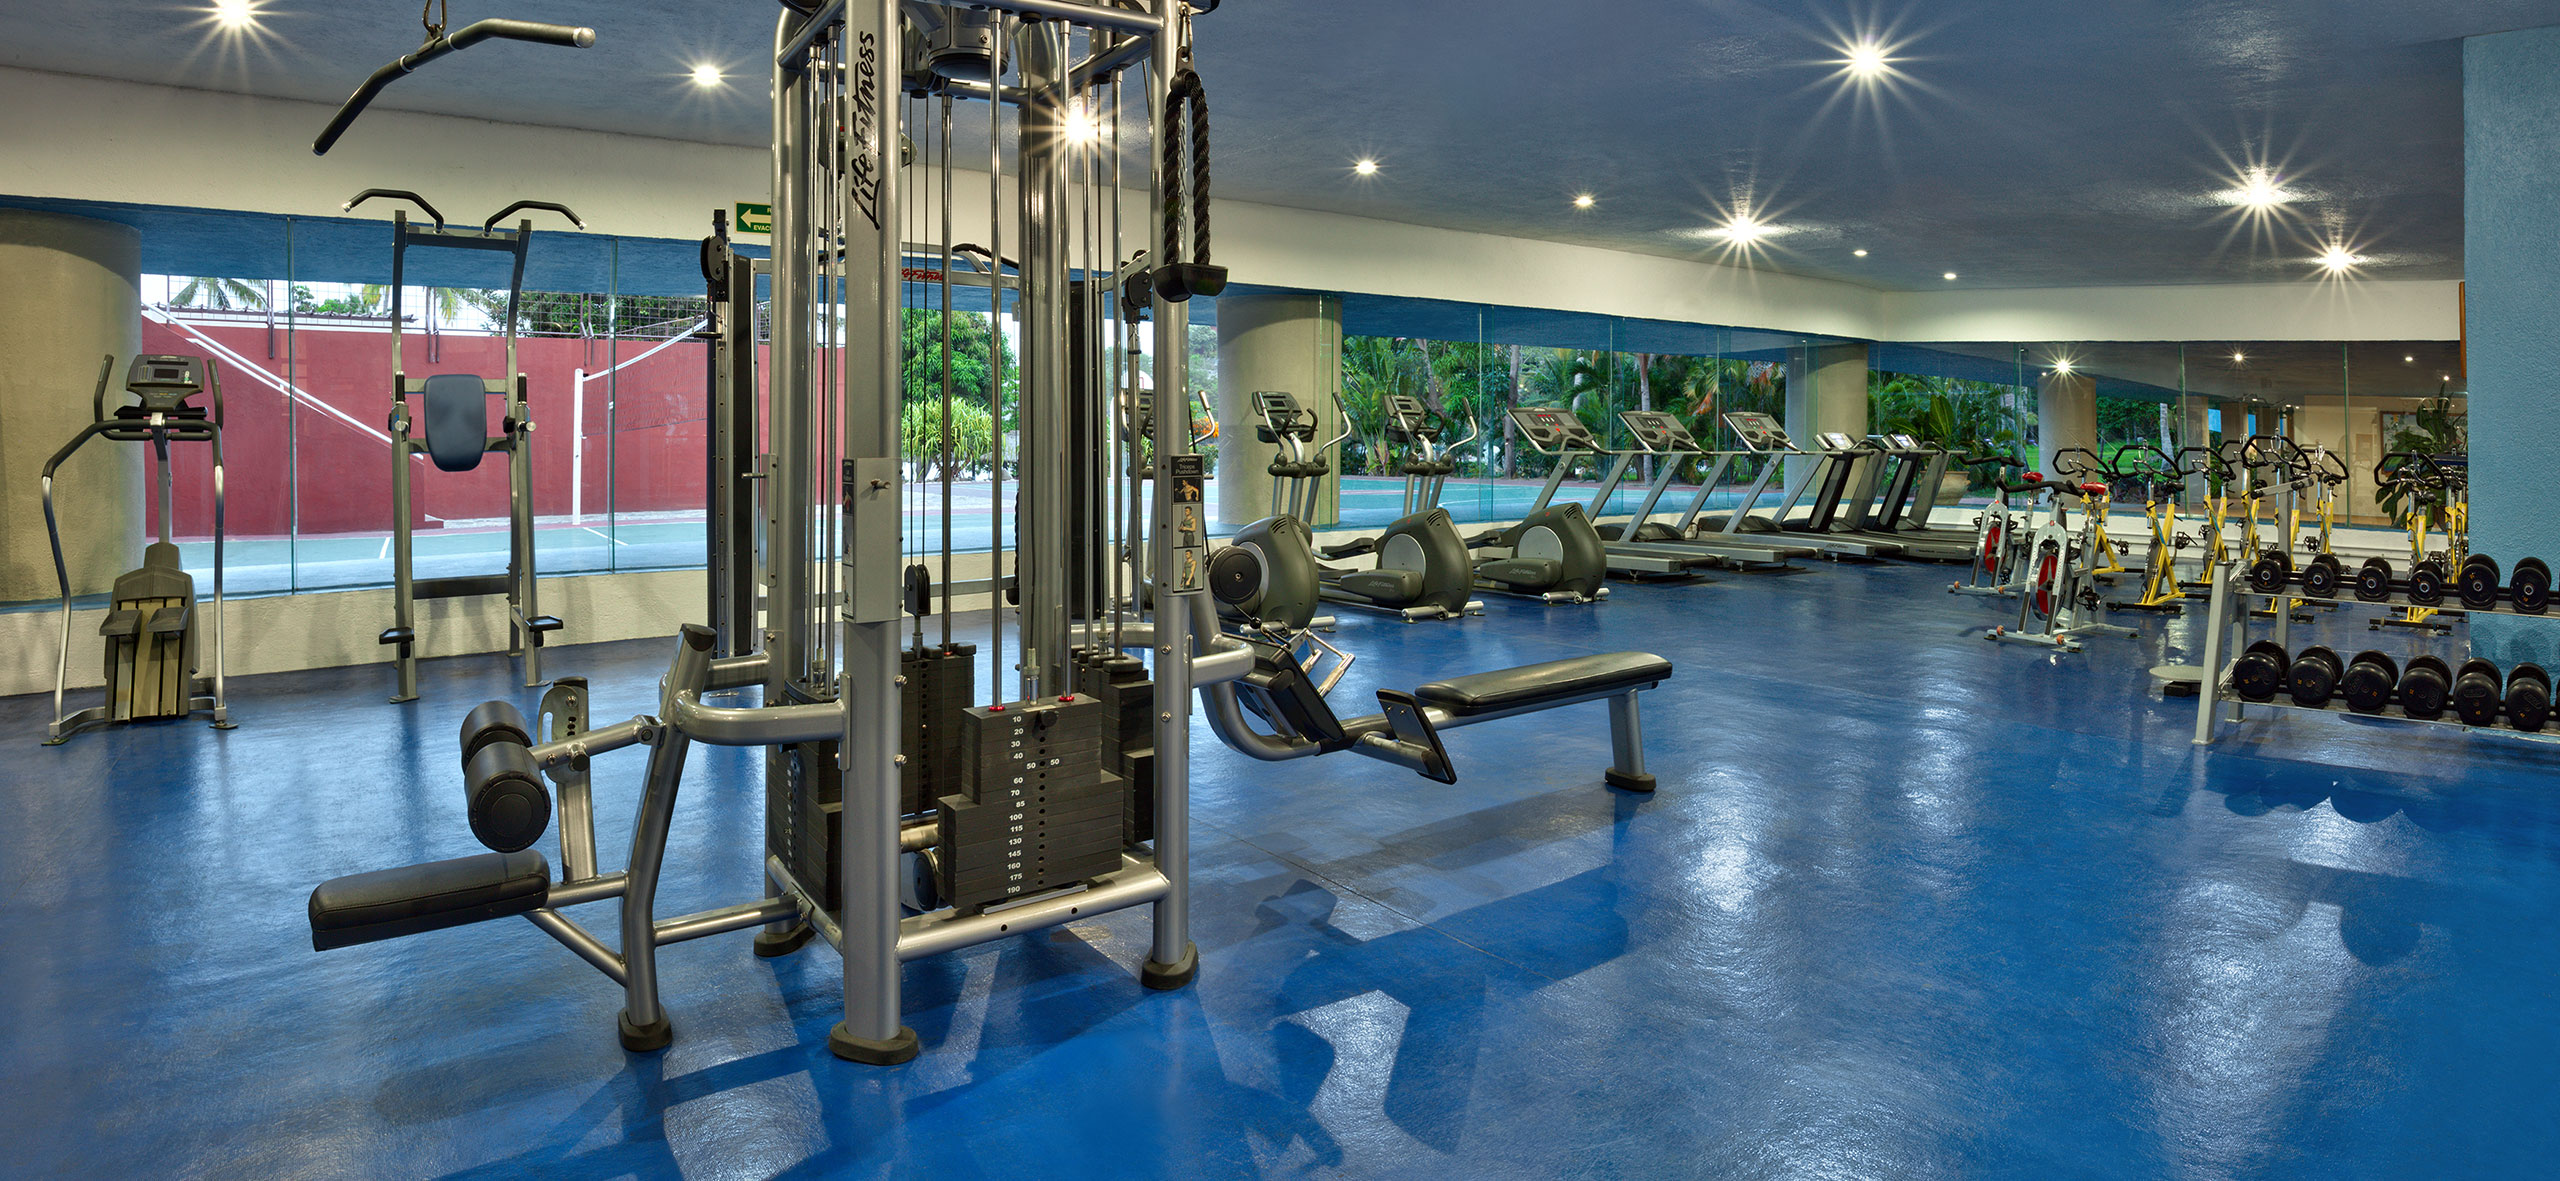 Gym at Hotel Las Brisas Huatulco